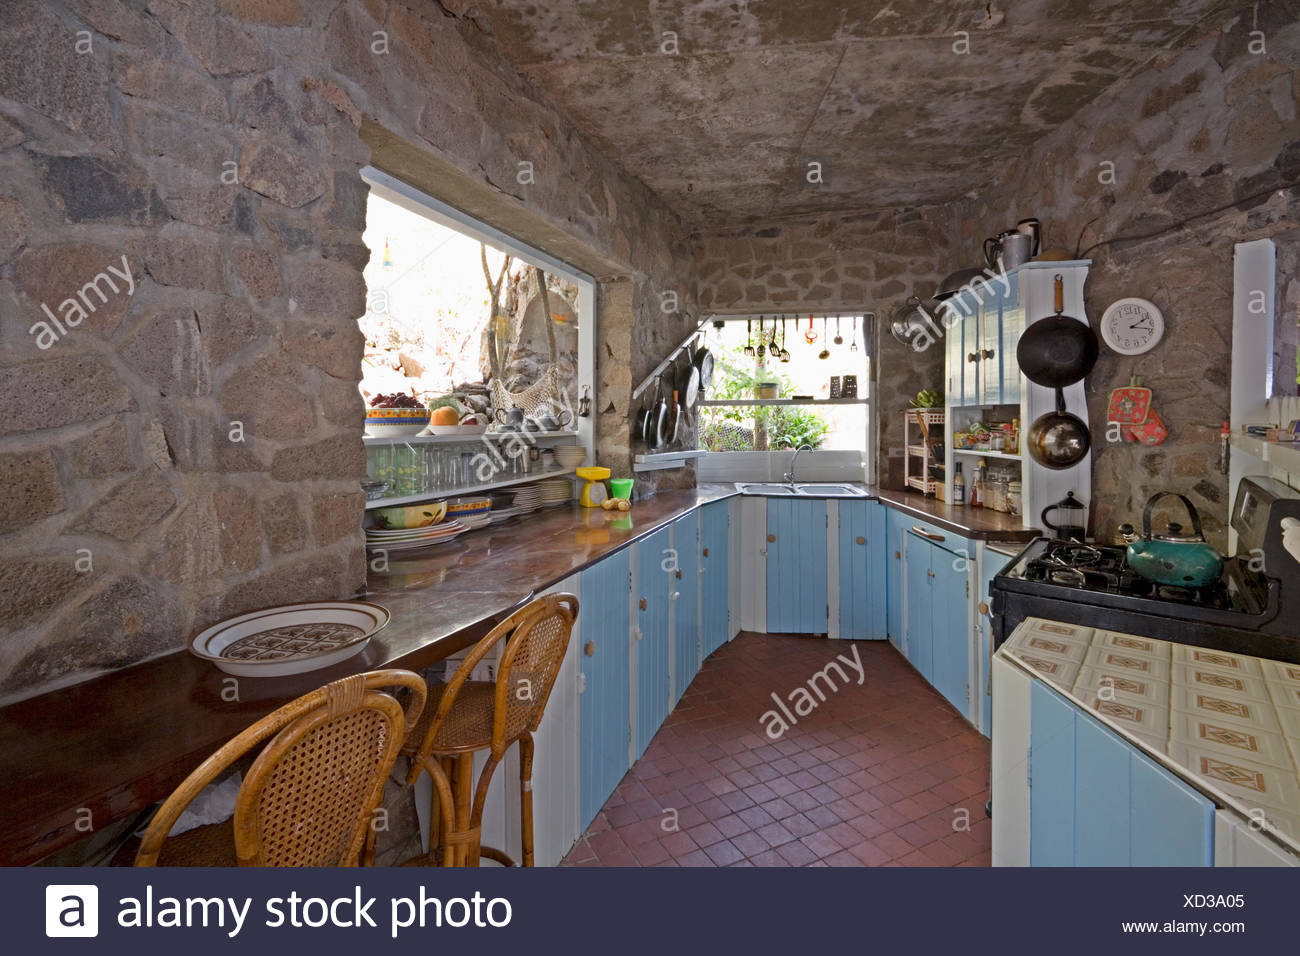 Cucina Interior Design Rustic Pale Blue Cupboards In Rustic Caribbean Kitchen With Stone Walls